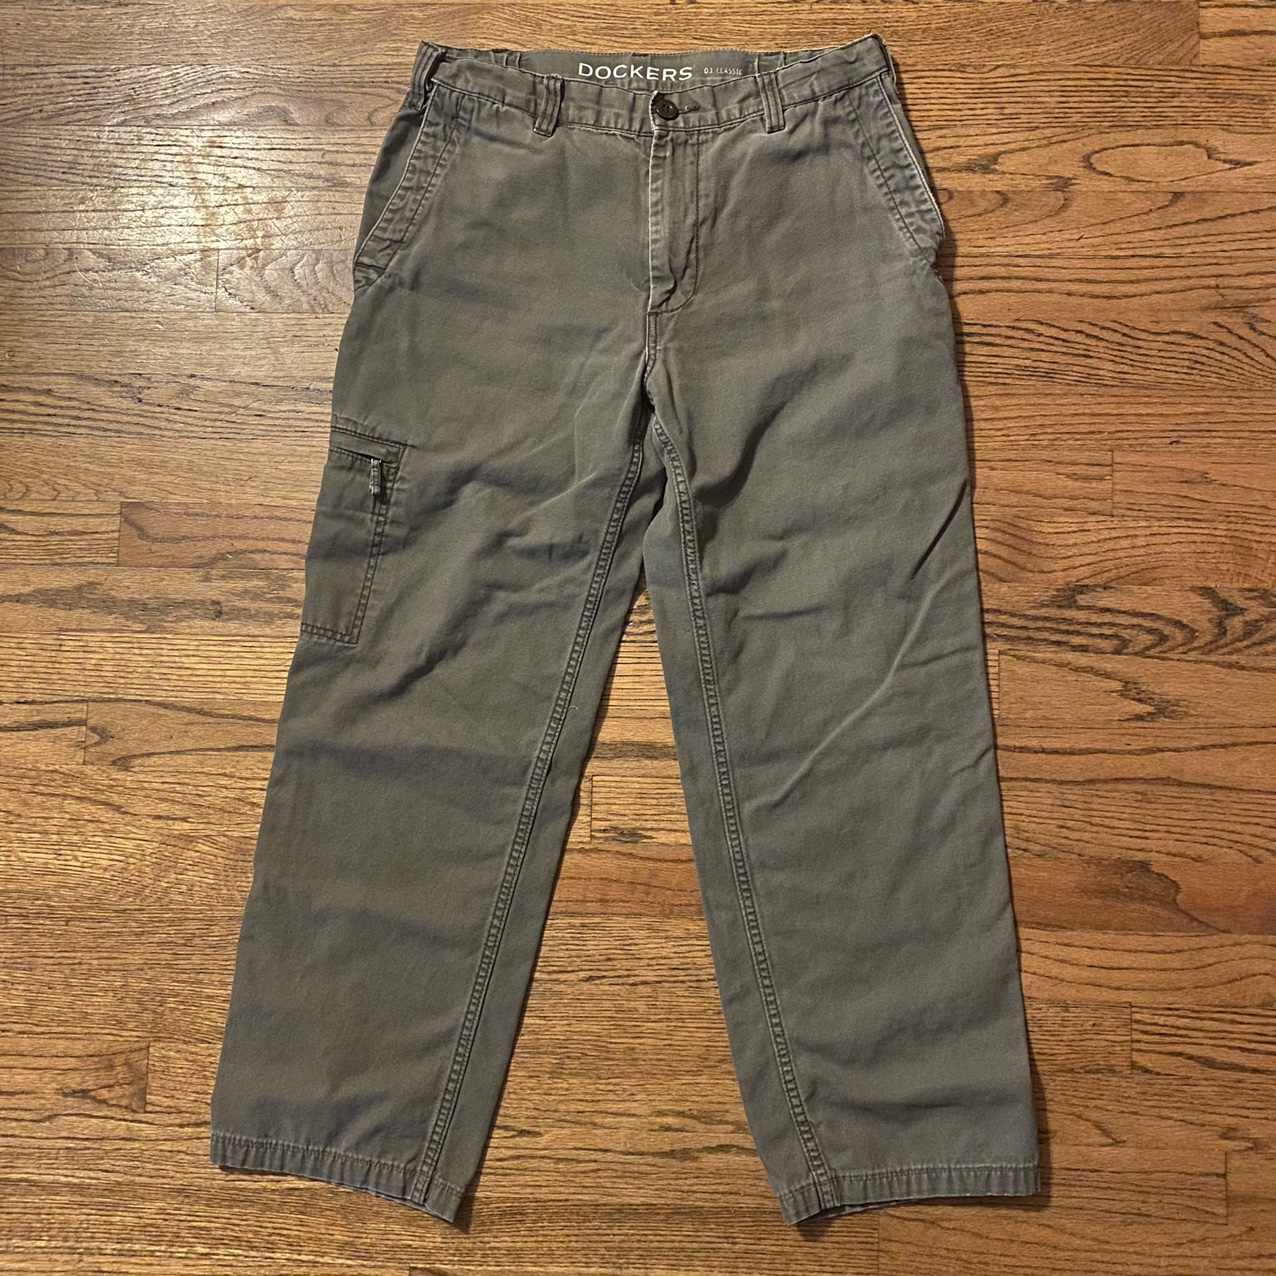 Product Image 1 - Dockers D3 Classic cargo pants.